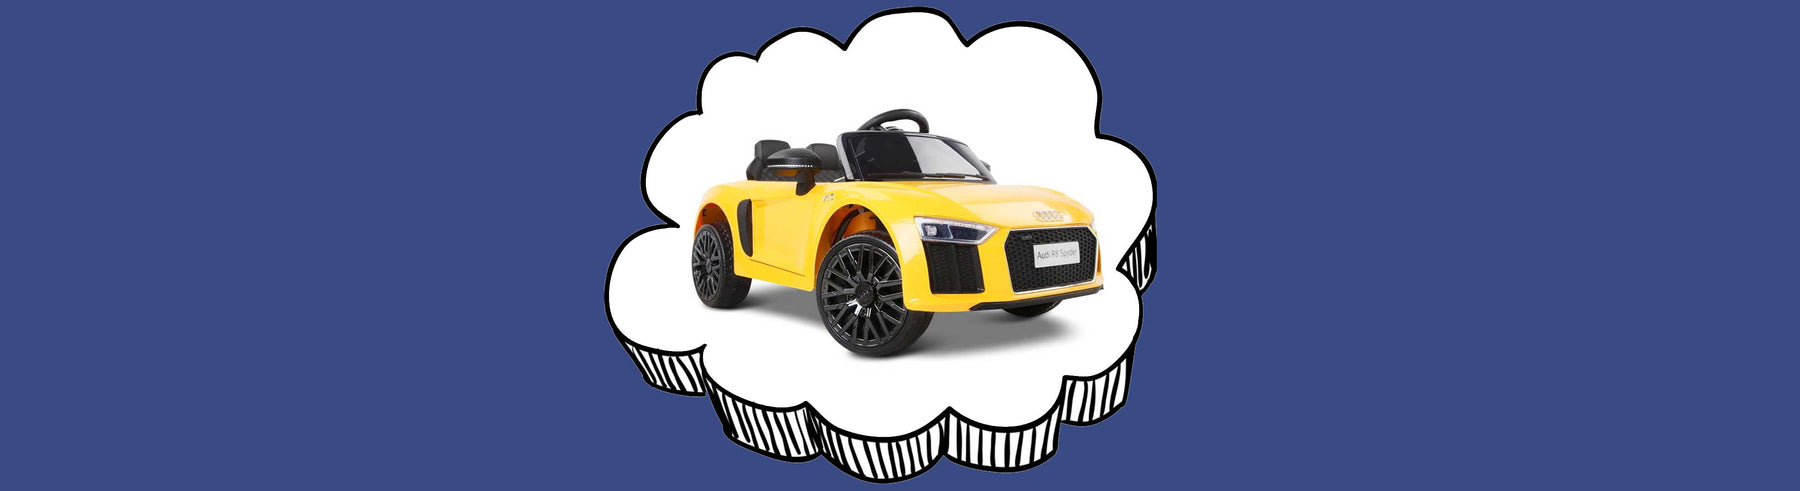 Audi R8 Spyder Licensed Kids Ride On Car with Remote Control